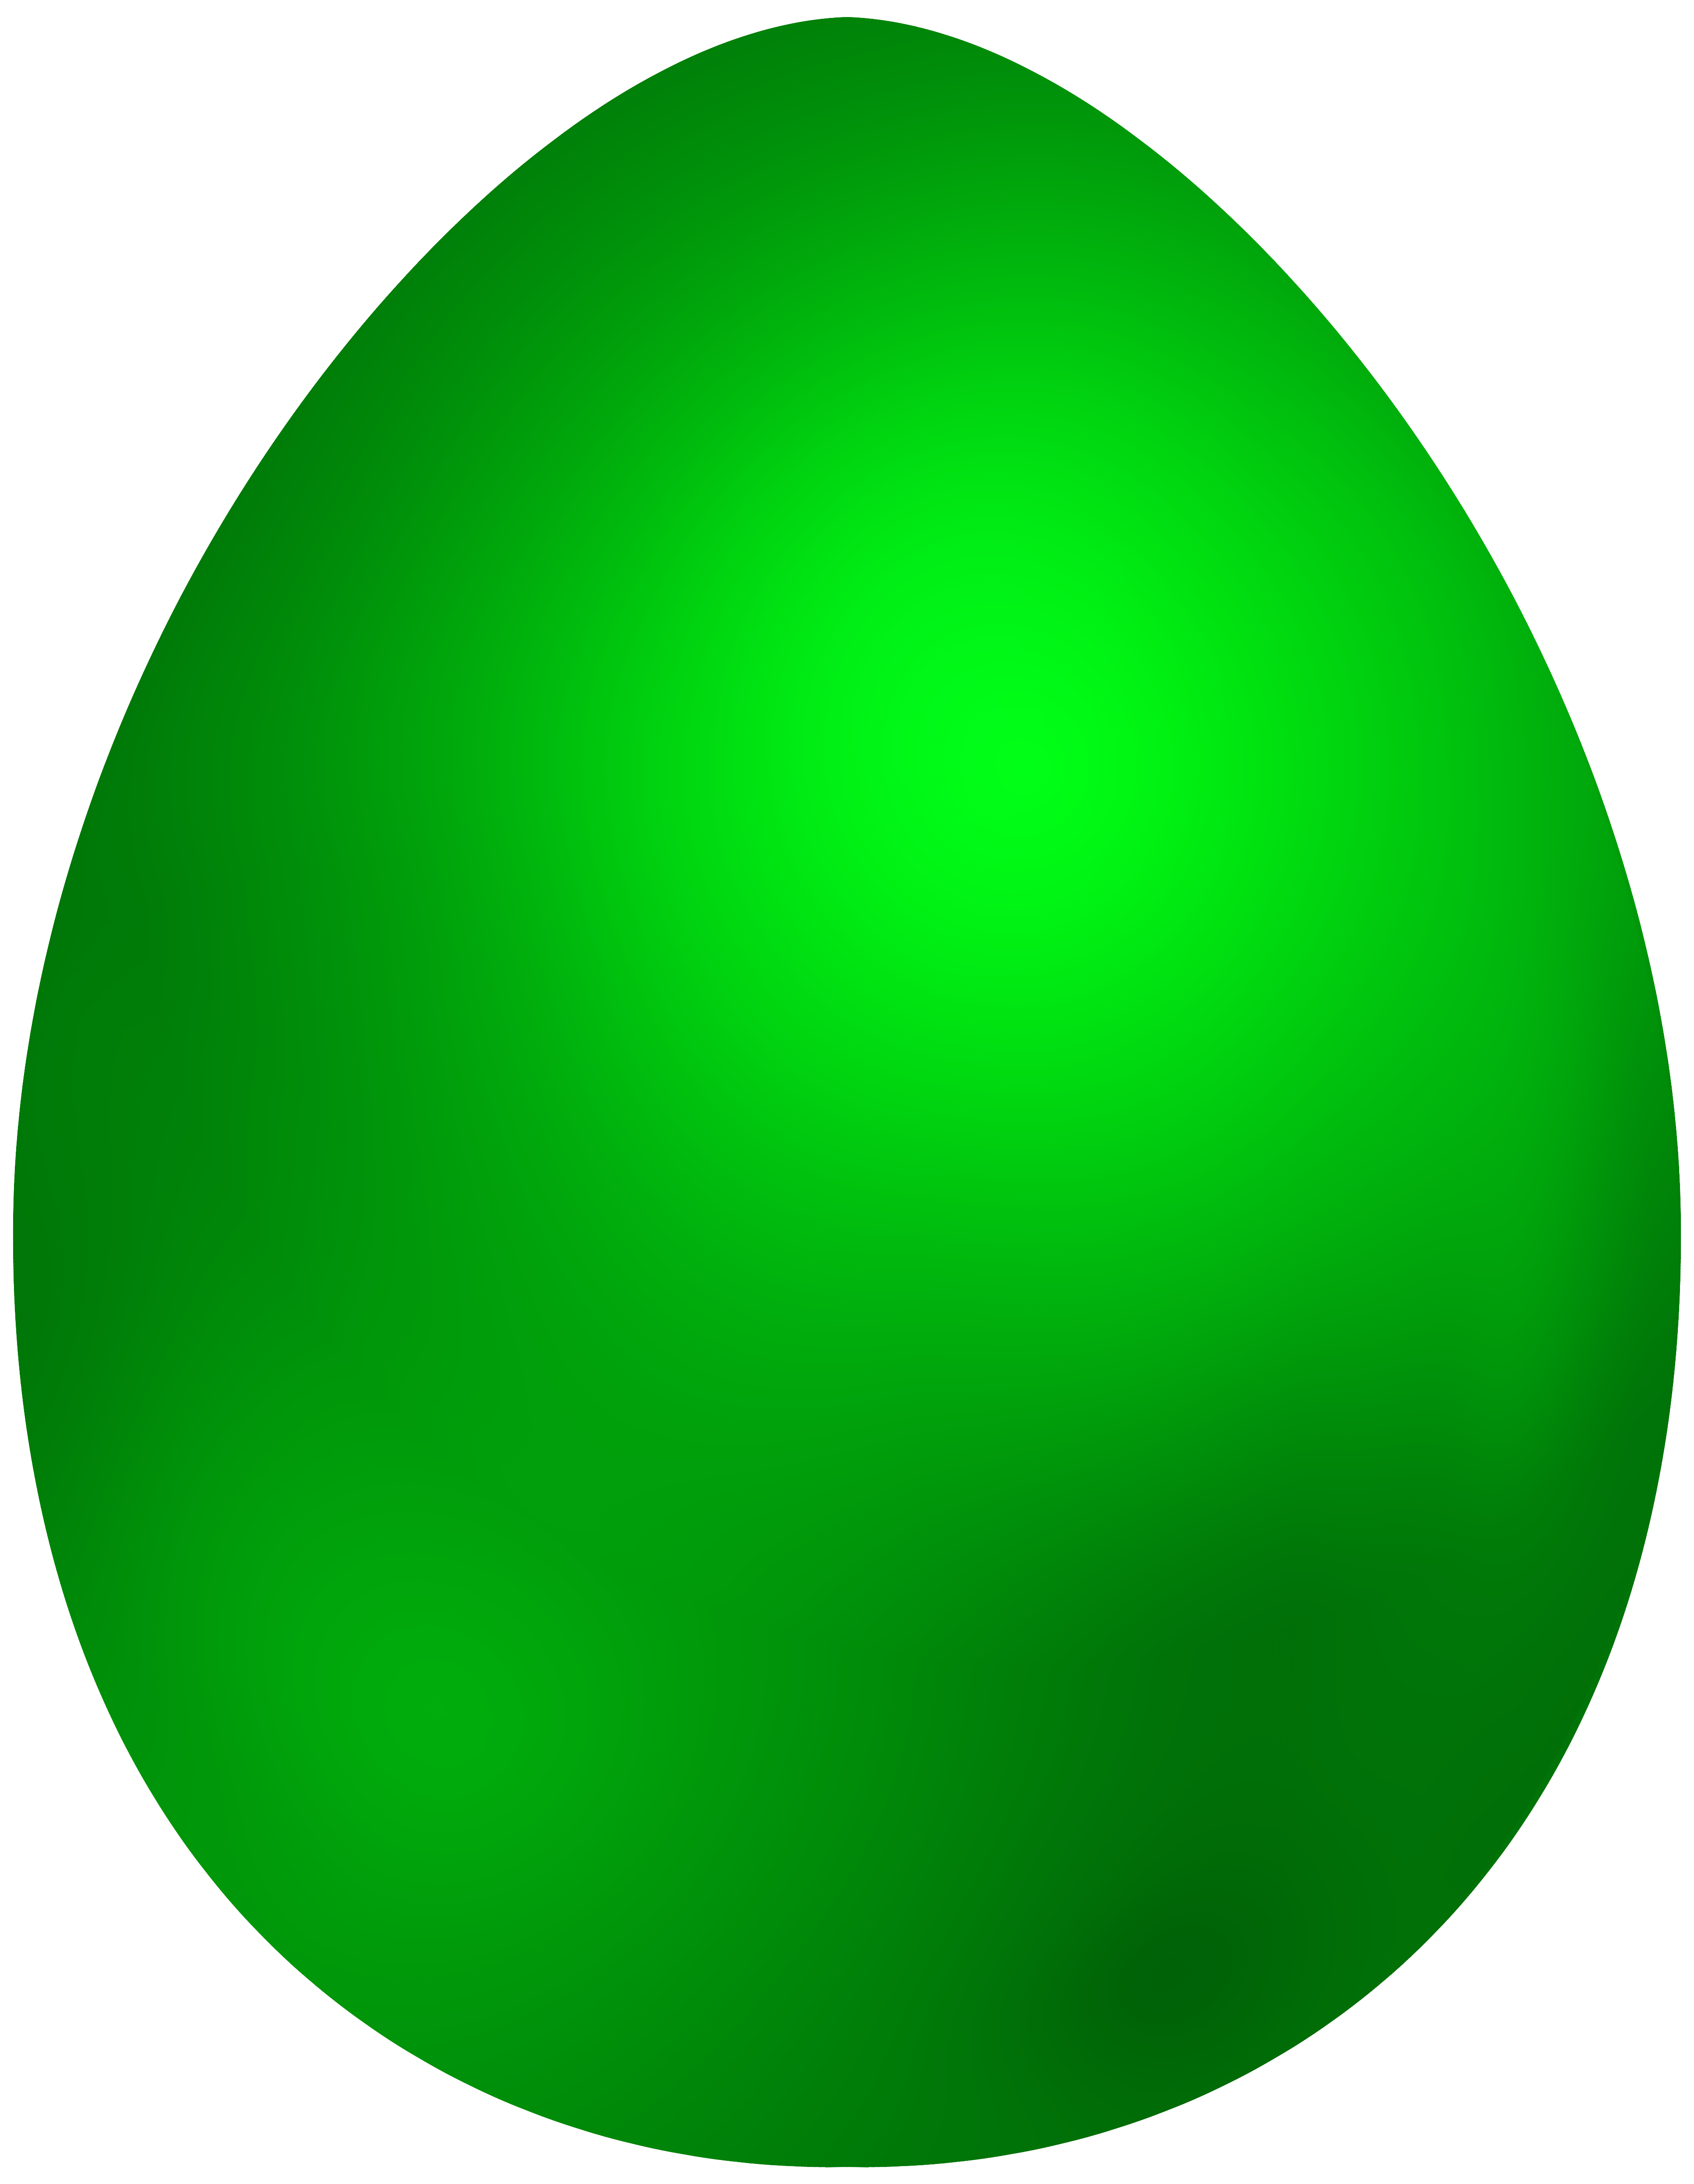 png transparent stock Easter egg png clip. Green clipart.